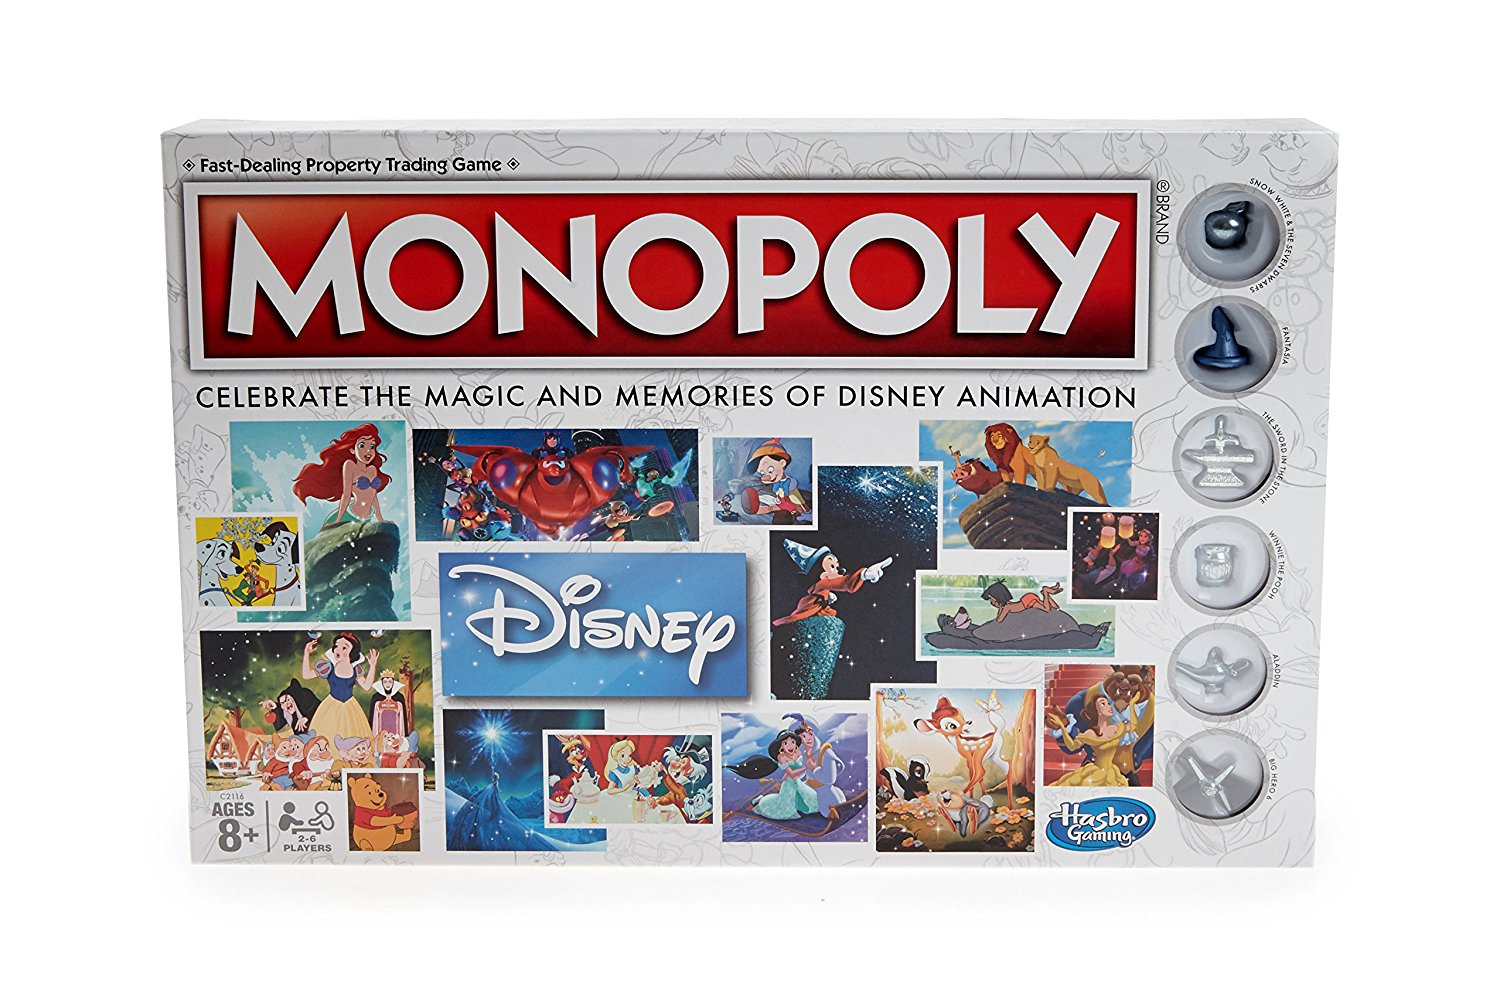 Monopoly: Disney Animation Edition, Celebrate the Magic and memories of 80 years of Disney... by